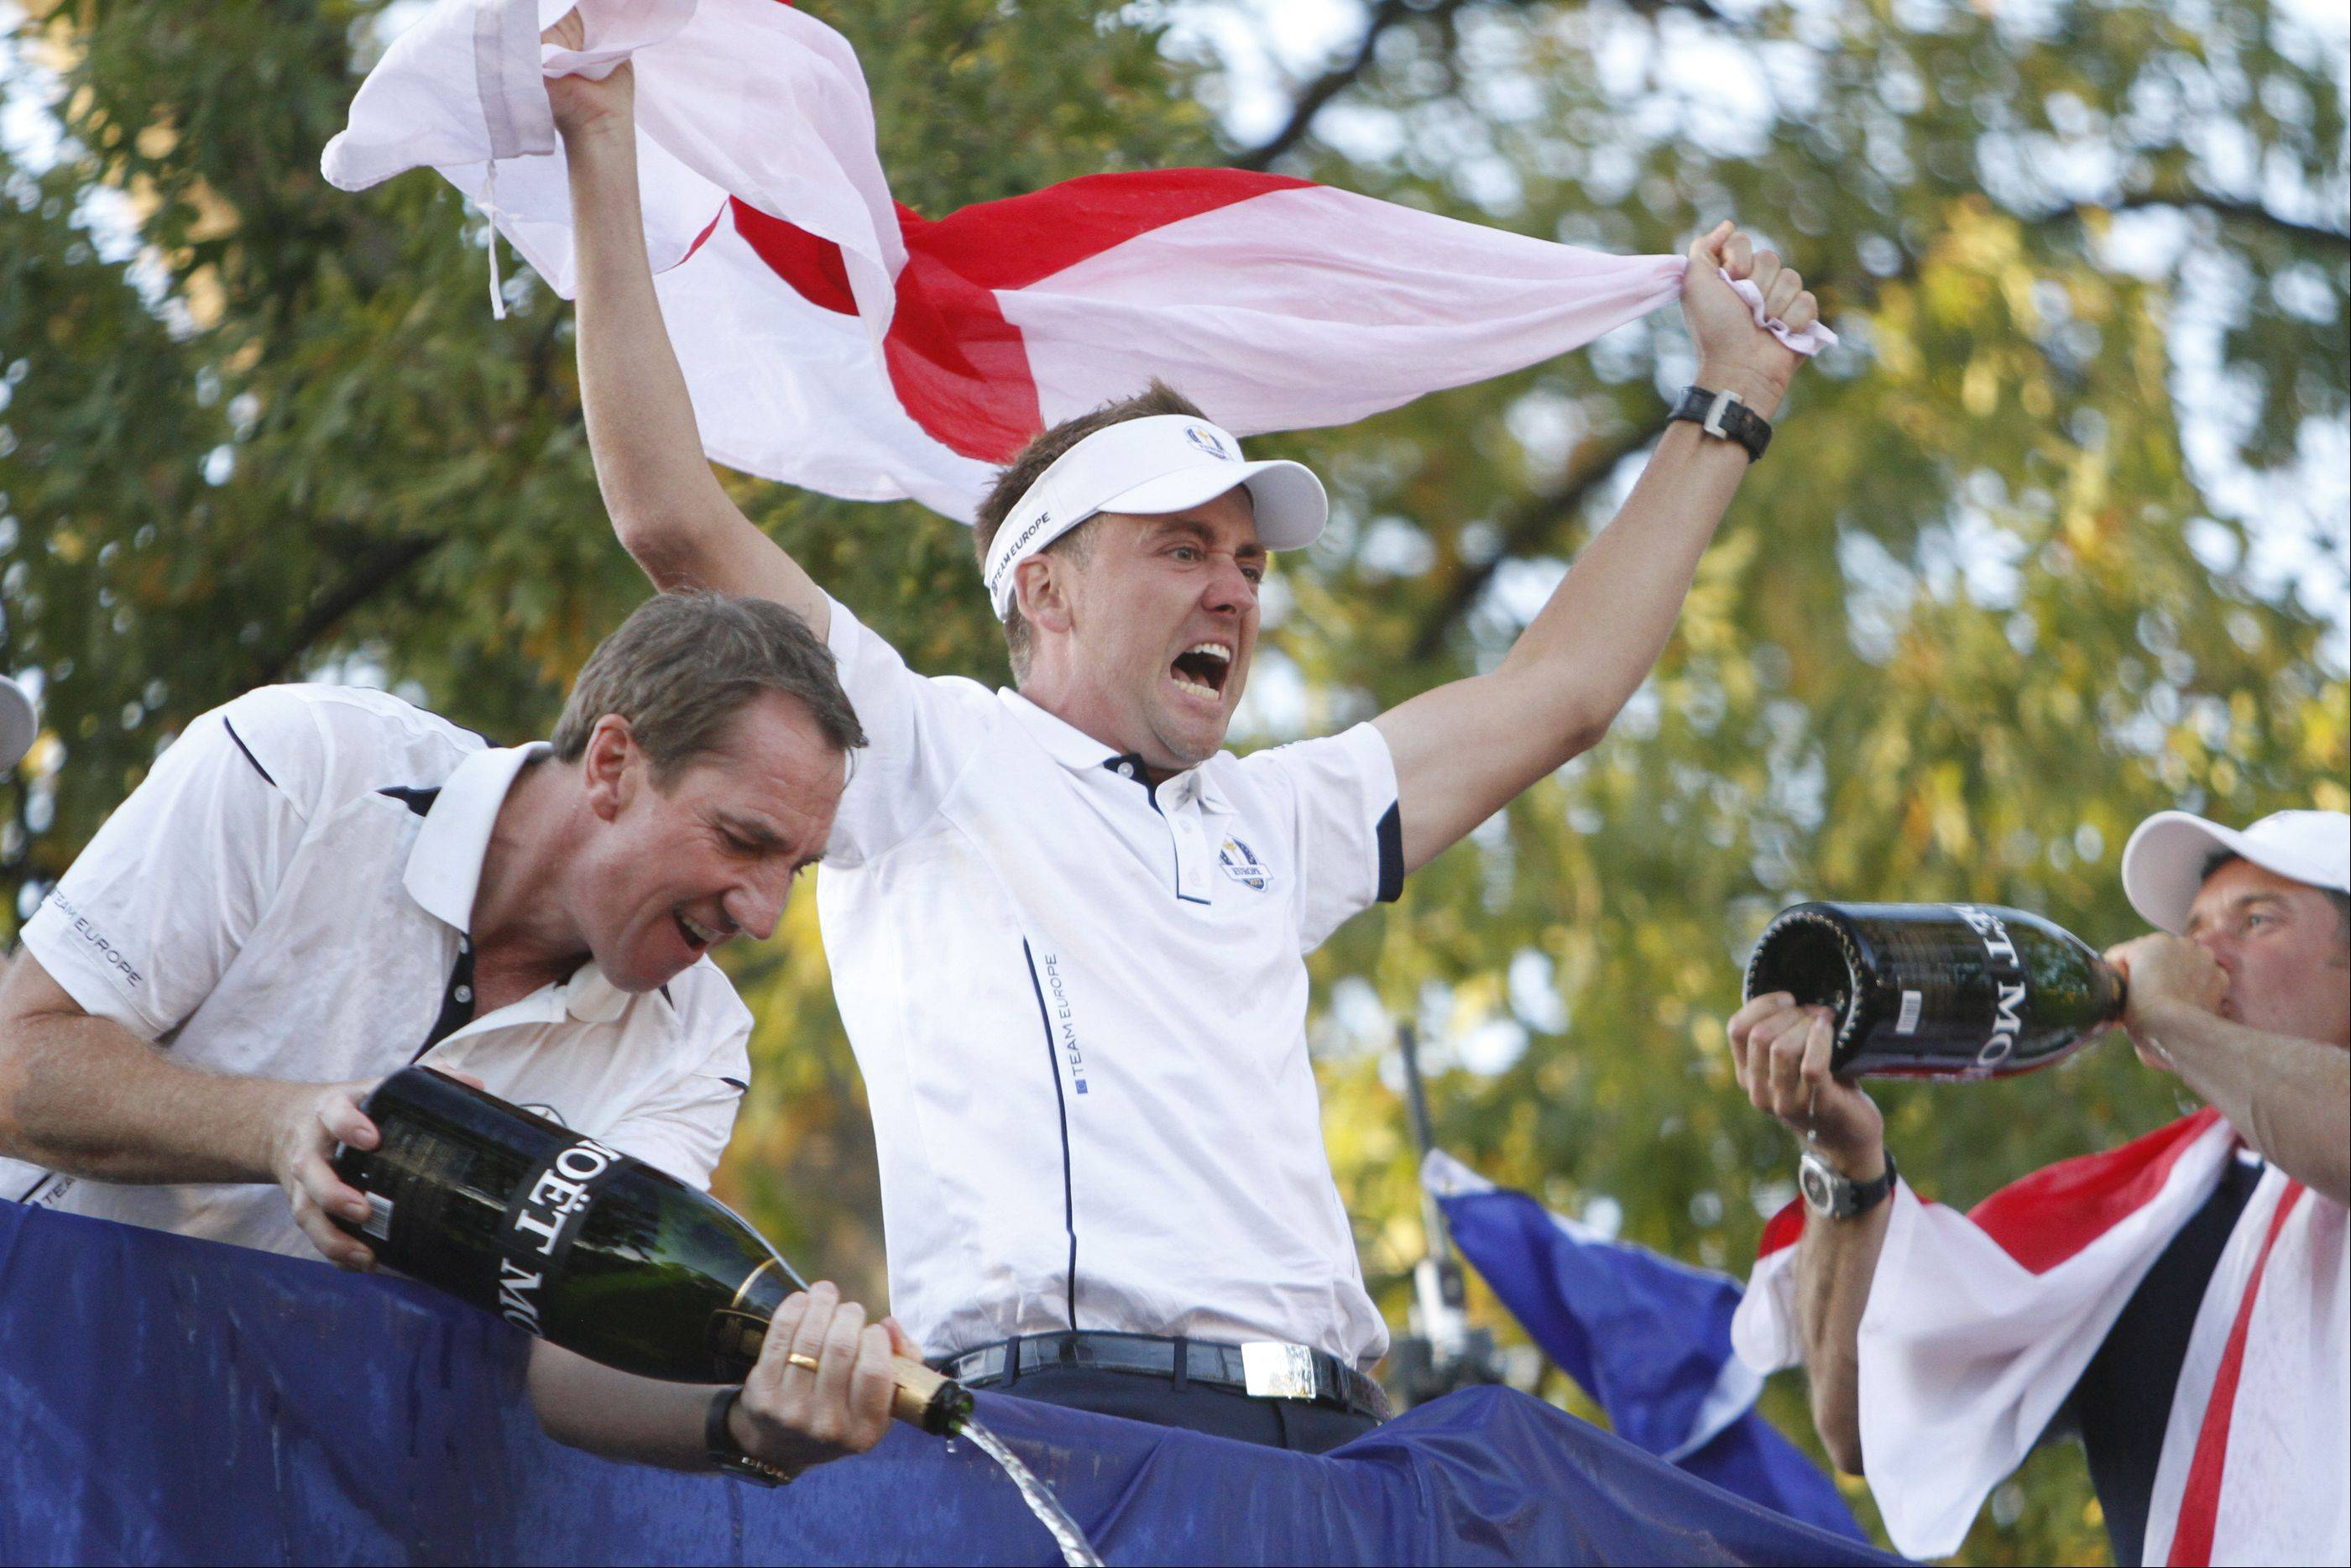 Ian Poulter celebrate team Europe's Ryder Cup victory Sunday during the final day of the 2012 Ryder Cup at Medinah Country Club.